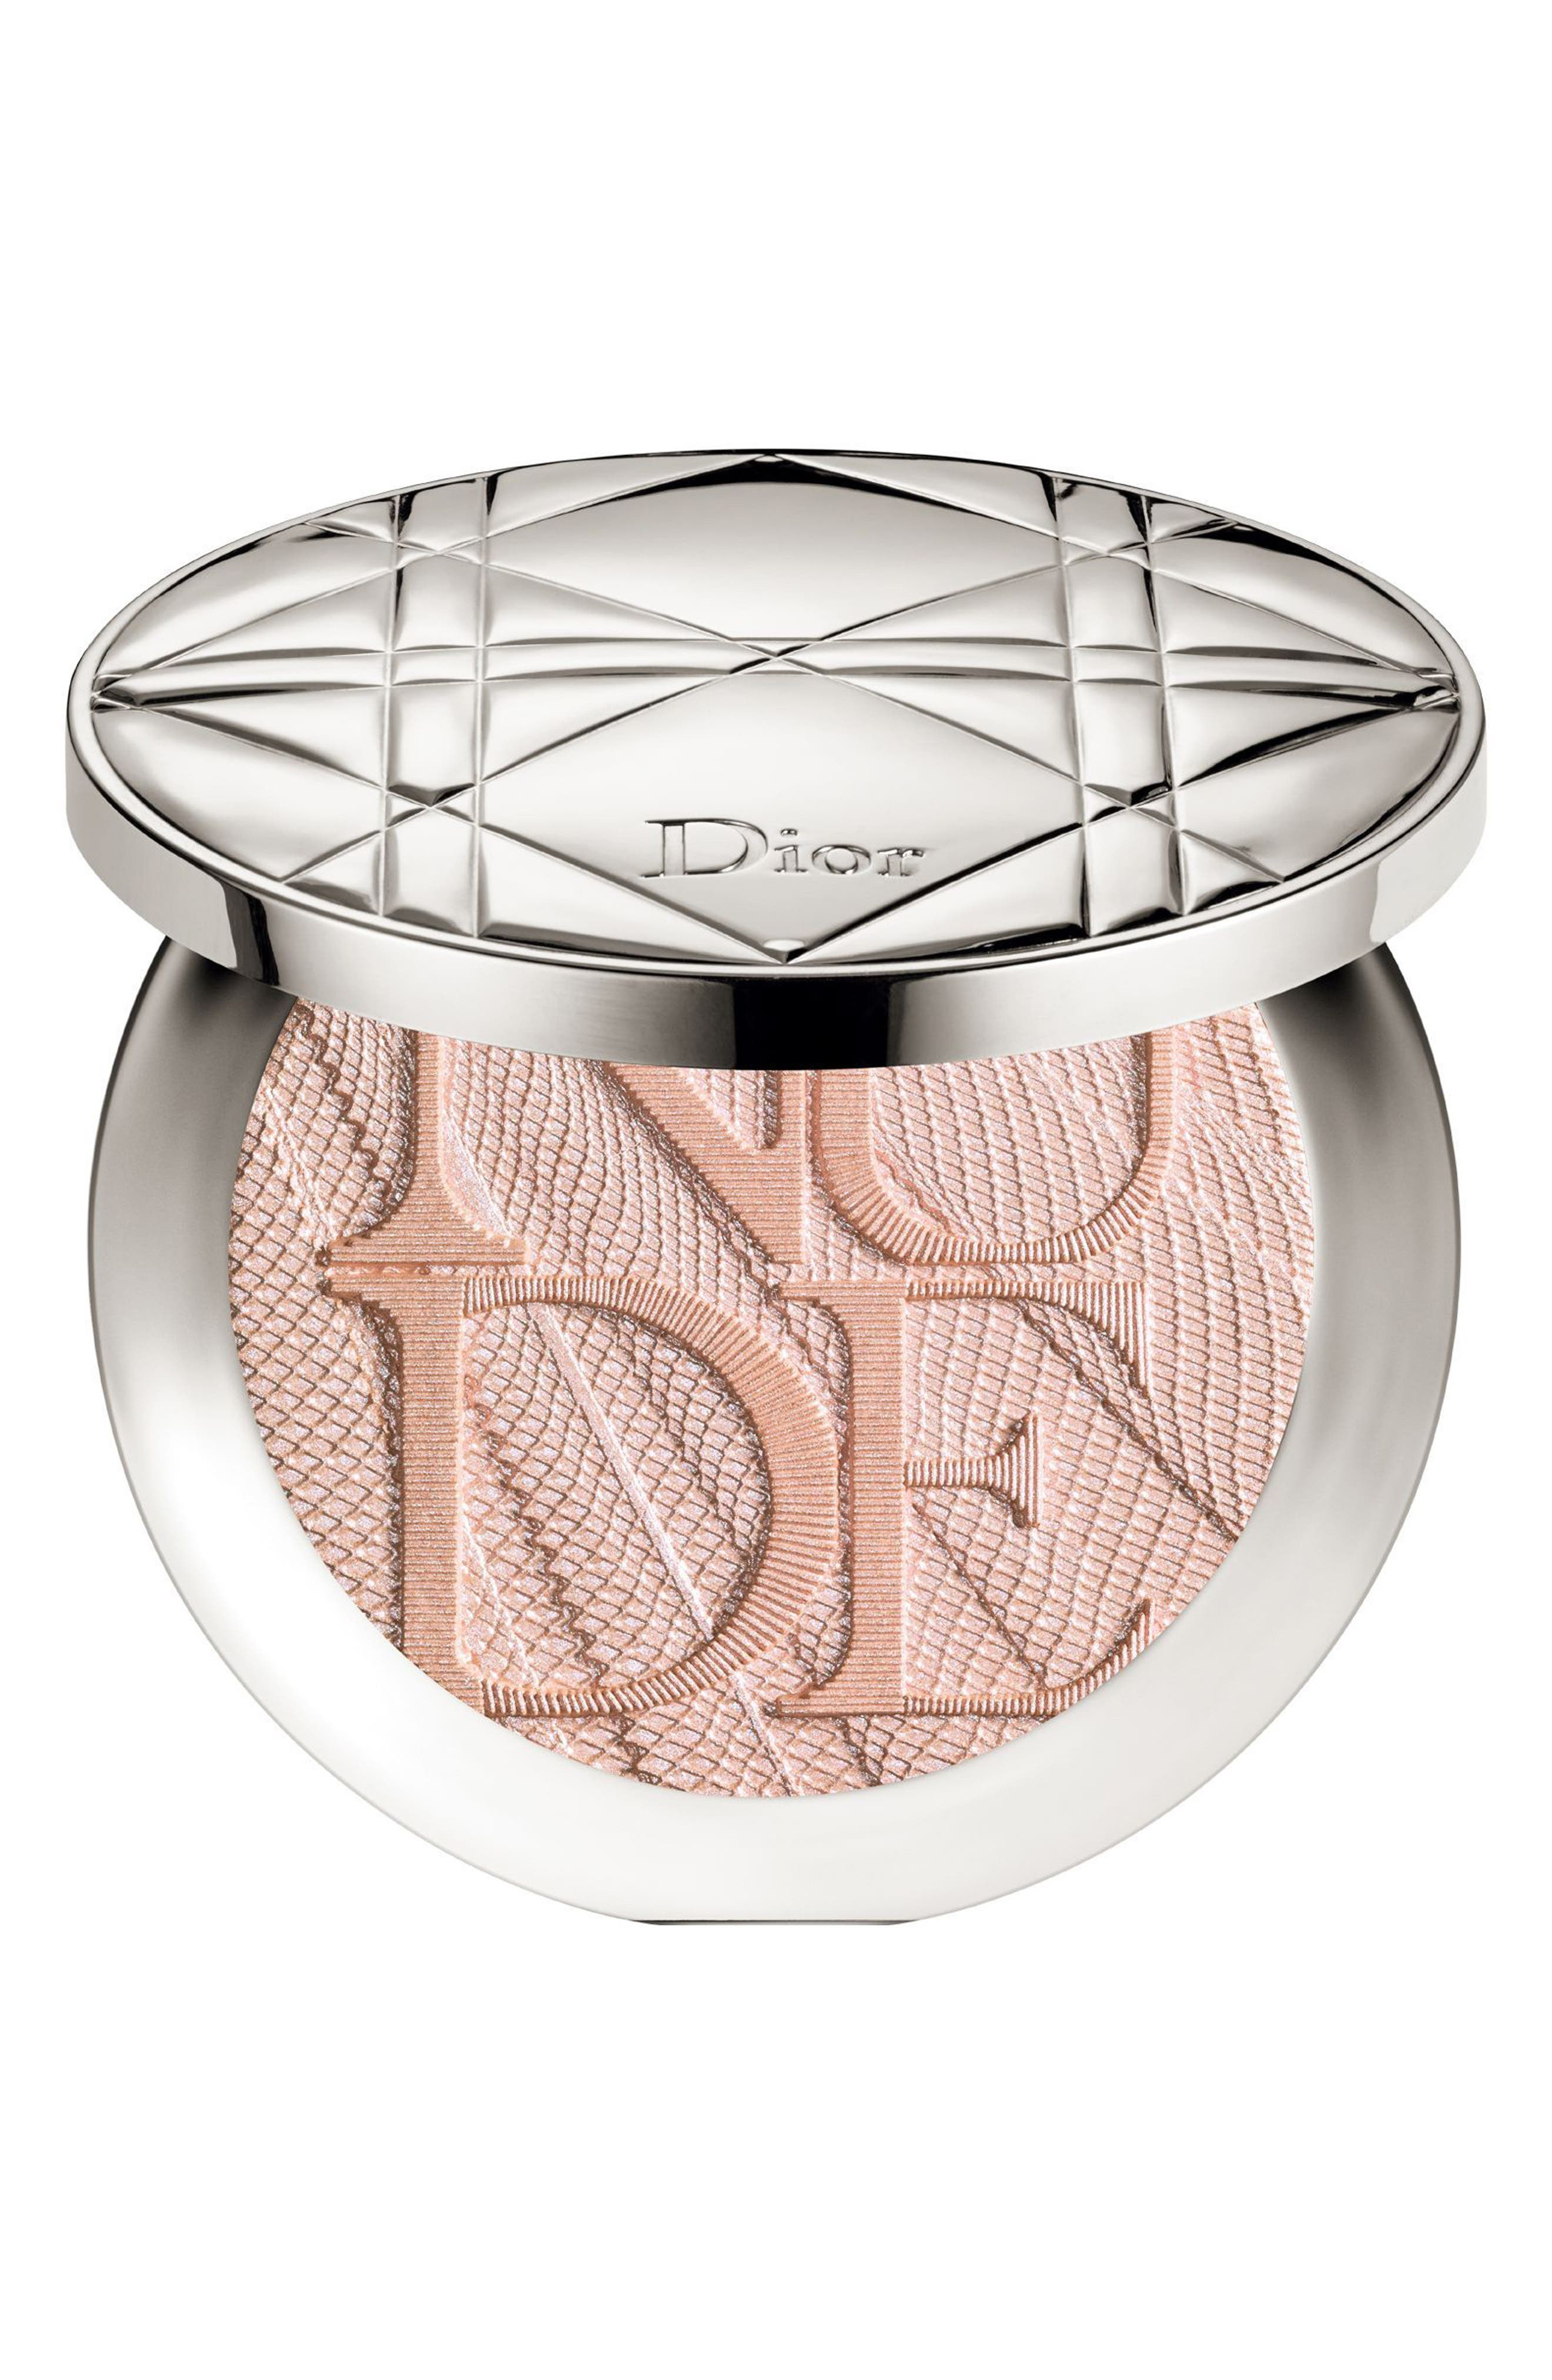 Diorskin Nude Air Luminizer Glow Addict Holographic Sculpting Powder,                             Main thumbnail 1, color,                             001 HOLO PINK